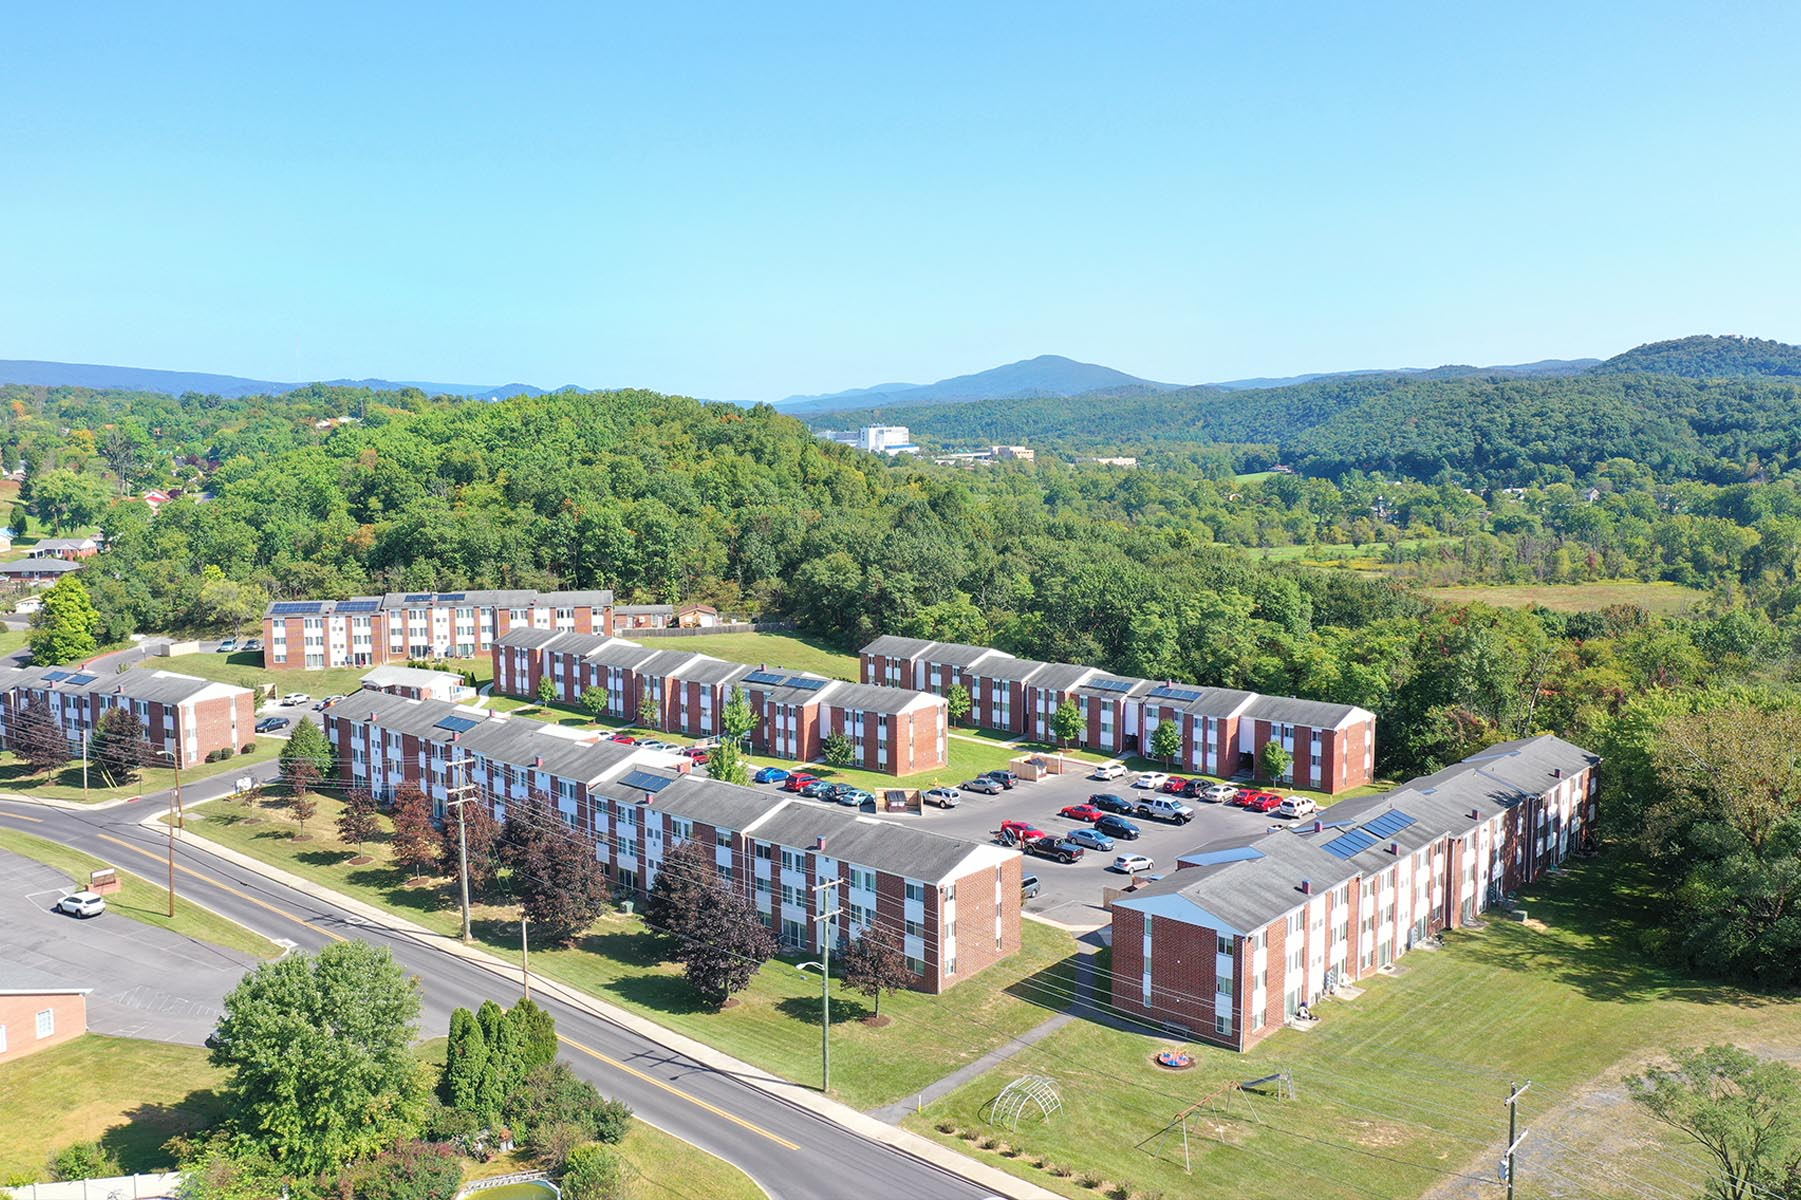 Aerial View of Fairstead Apartments on Sunny Day